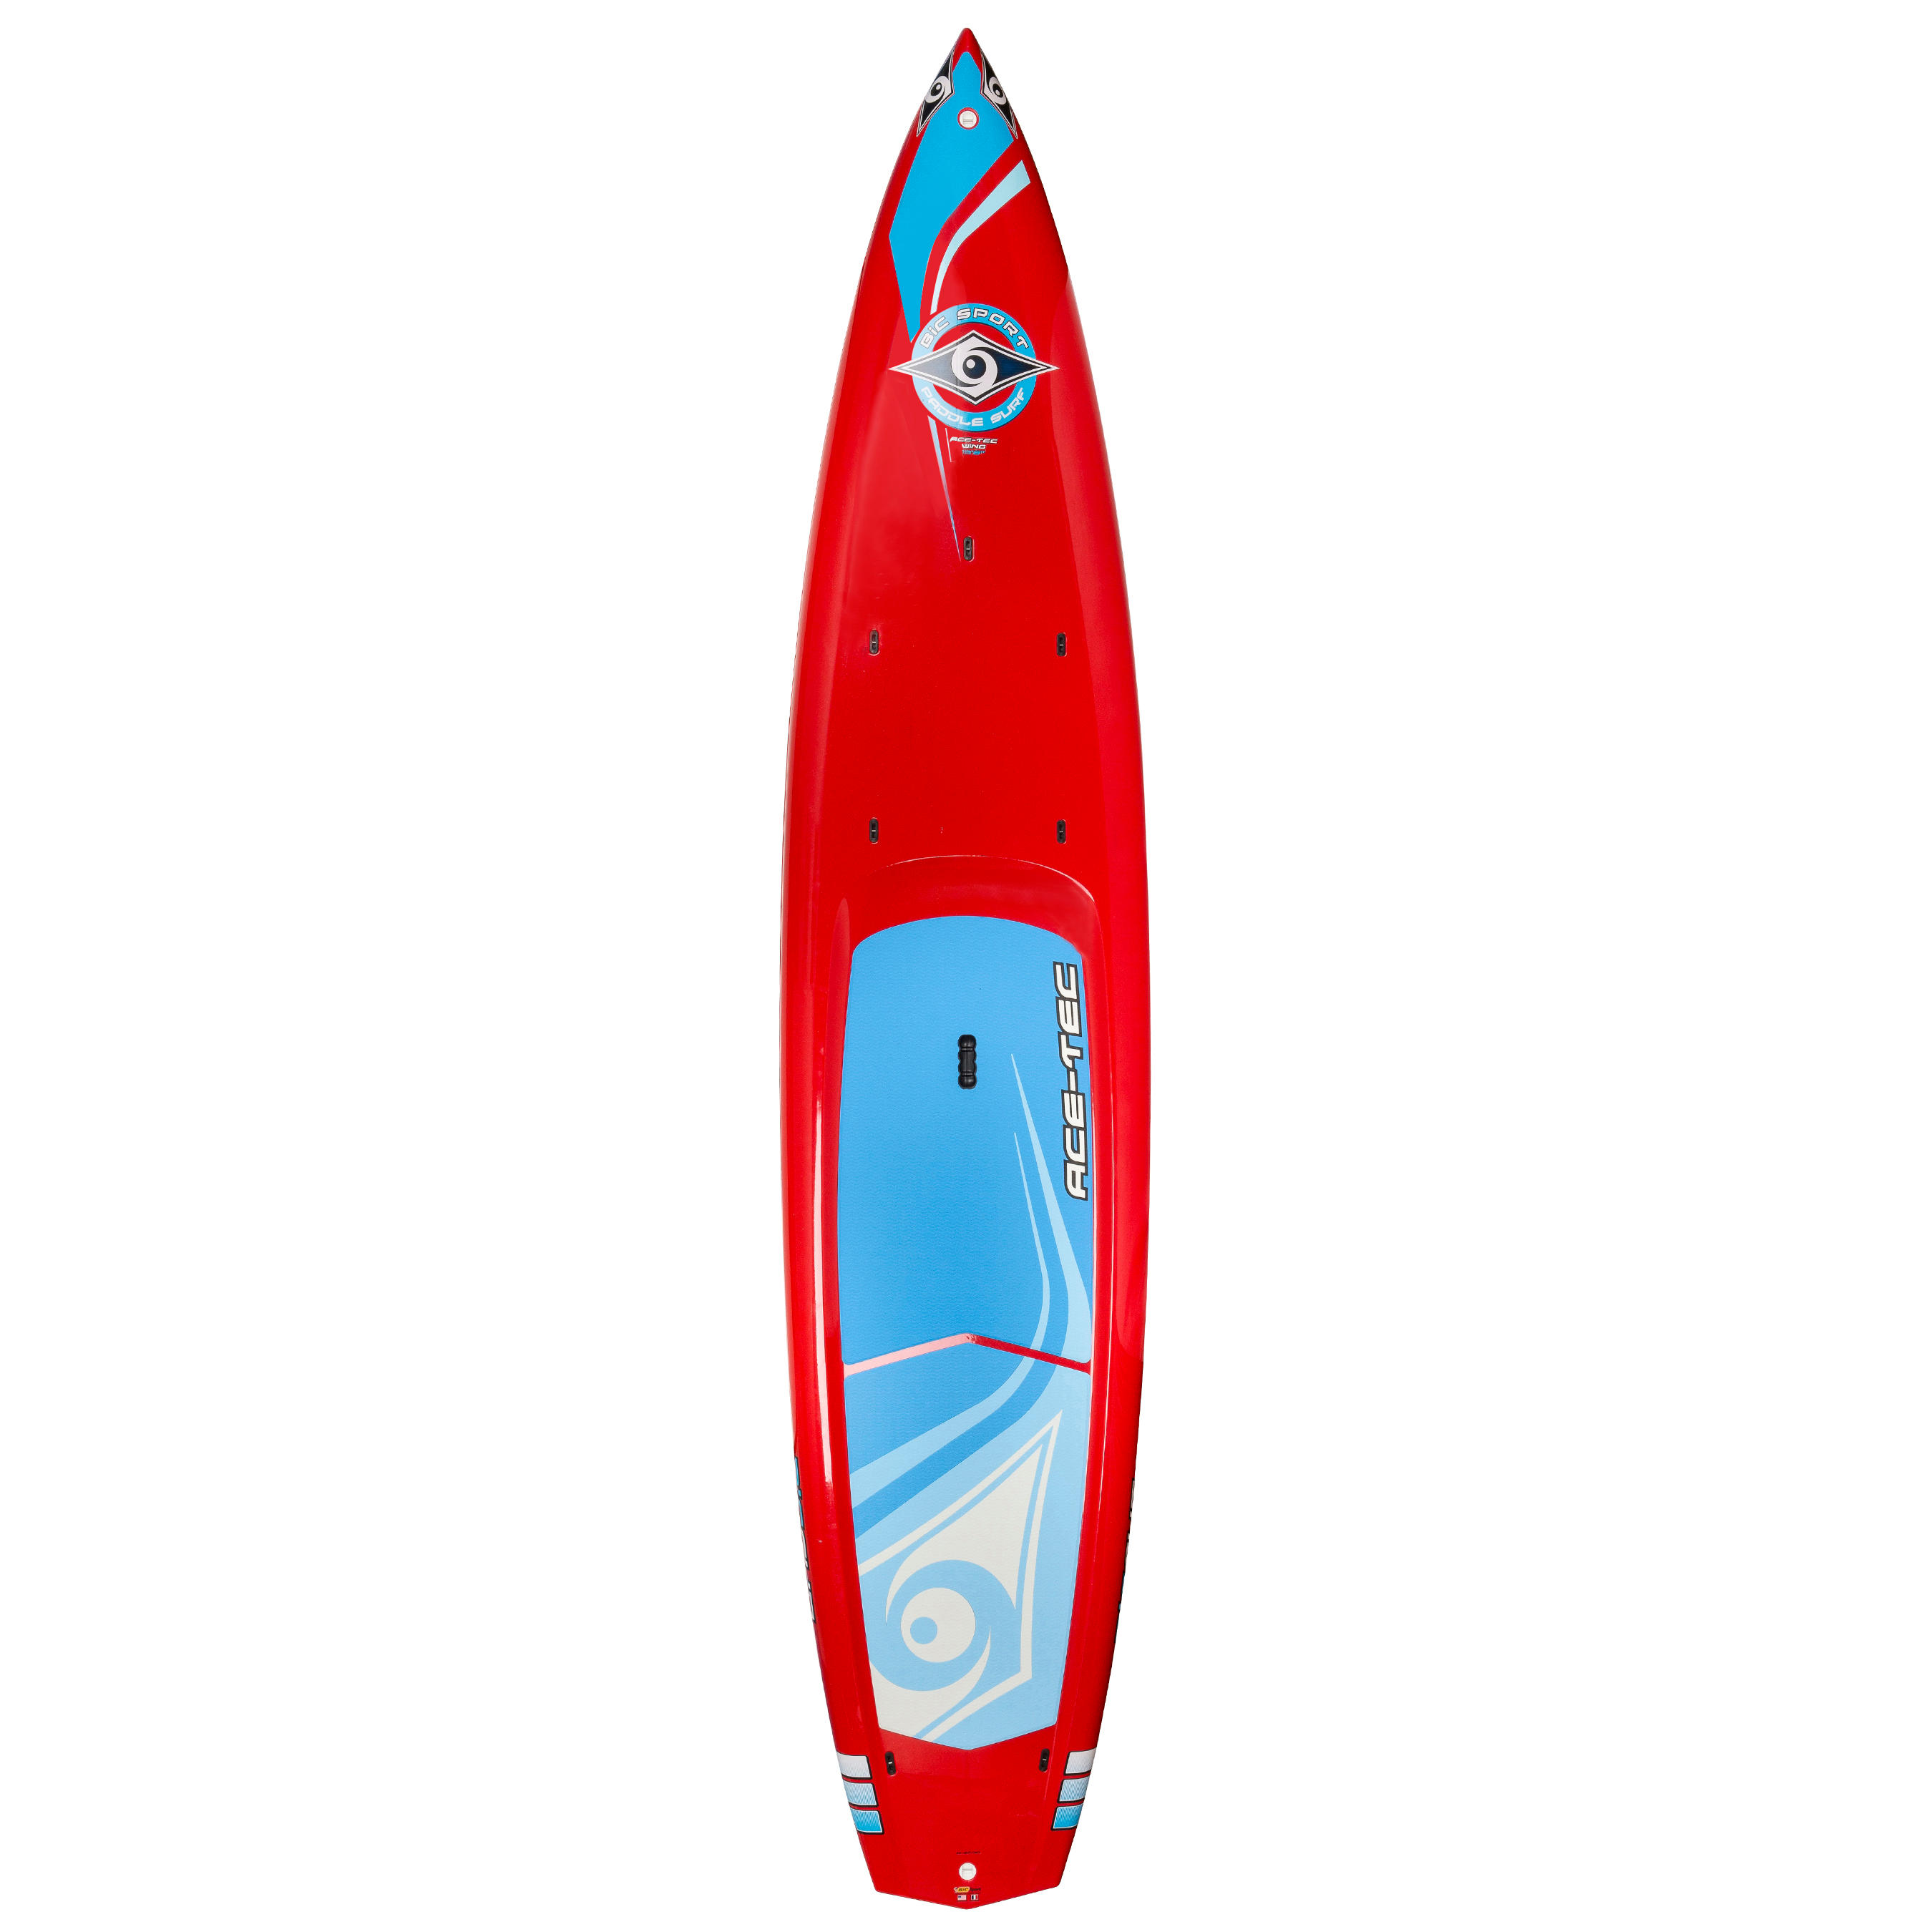 Bic sport Stand-up paddle hardboard Ace-Tec Wing 12'6 rood